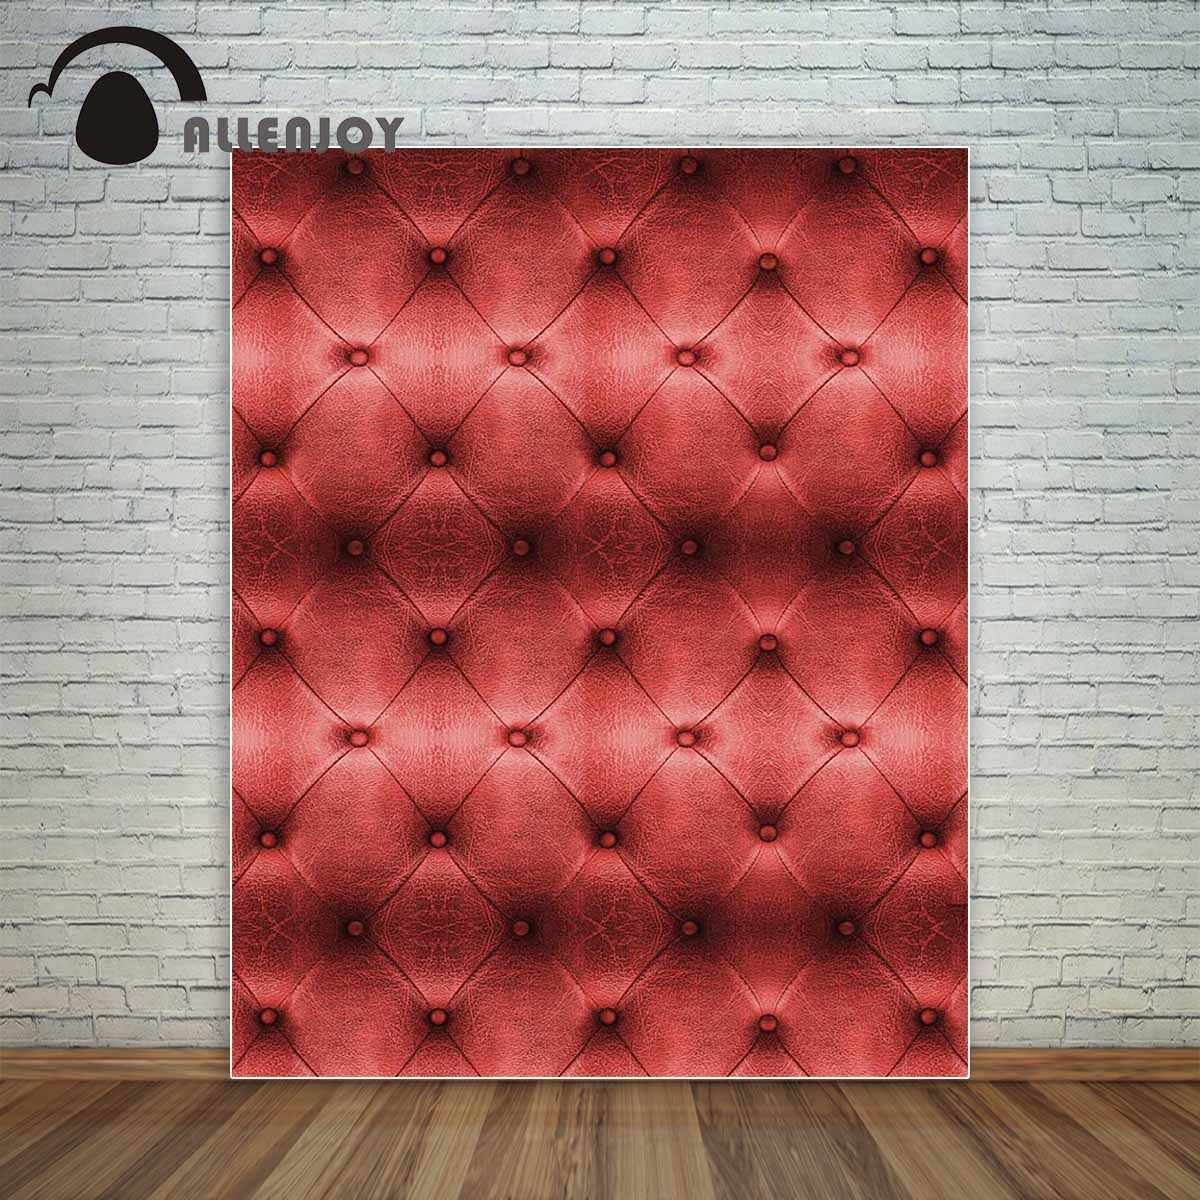 Allenjoy vinyl photo backdrop Luxury red leather sofa texture classic  button bed board background photobooth new arrival design